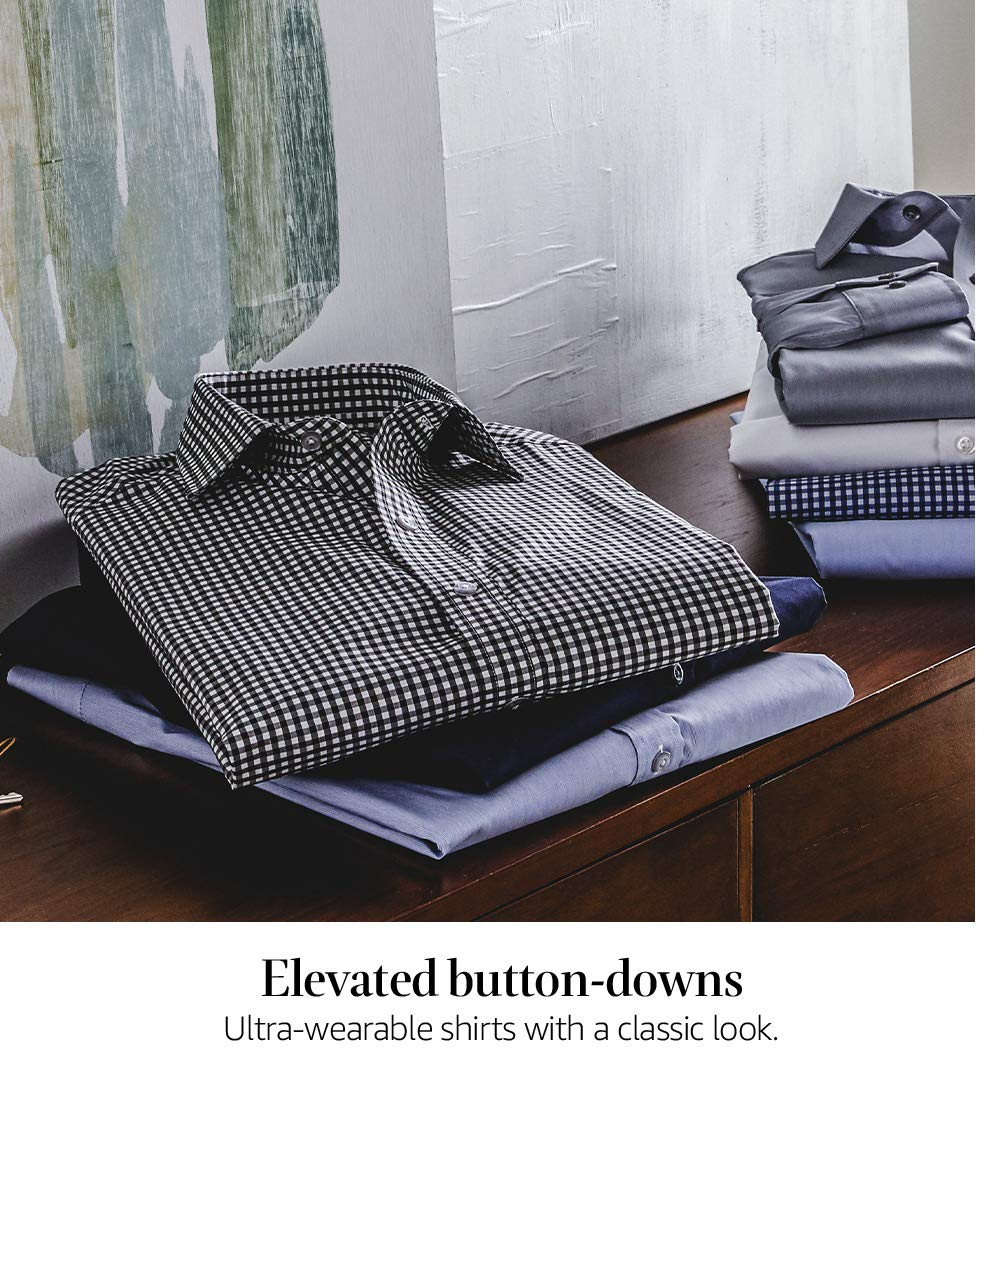 Elevated button-downs